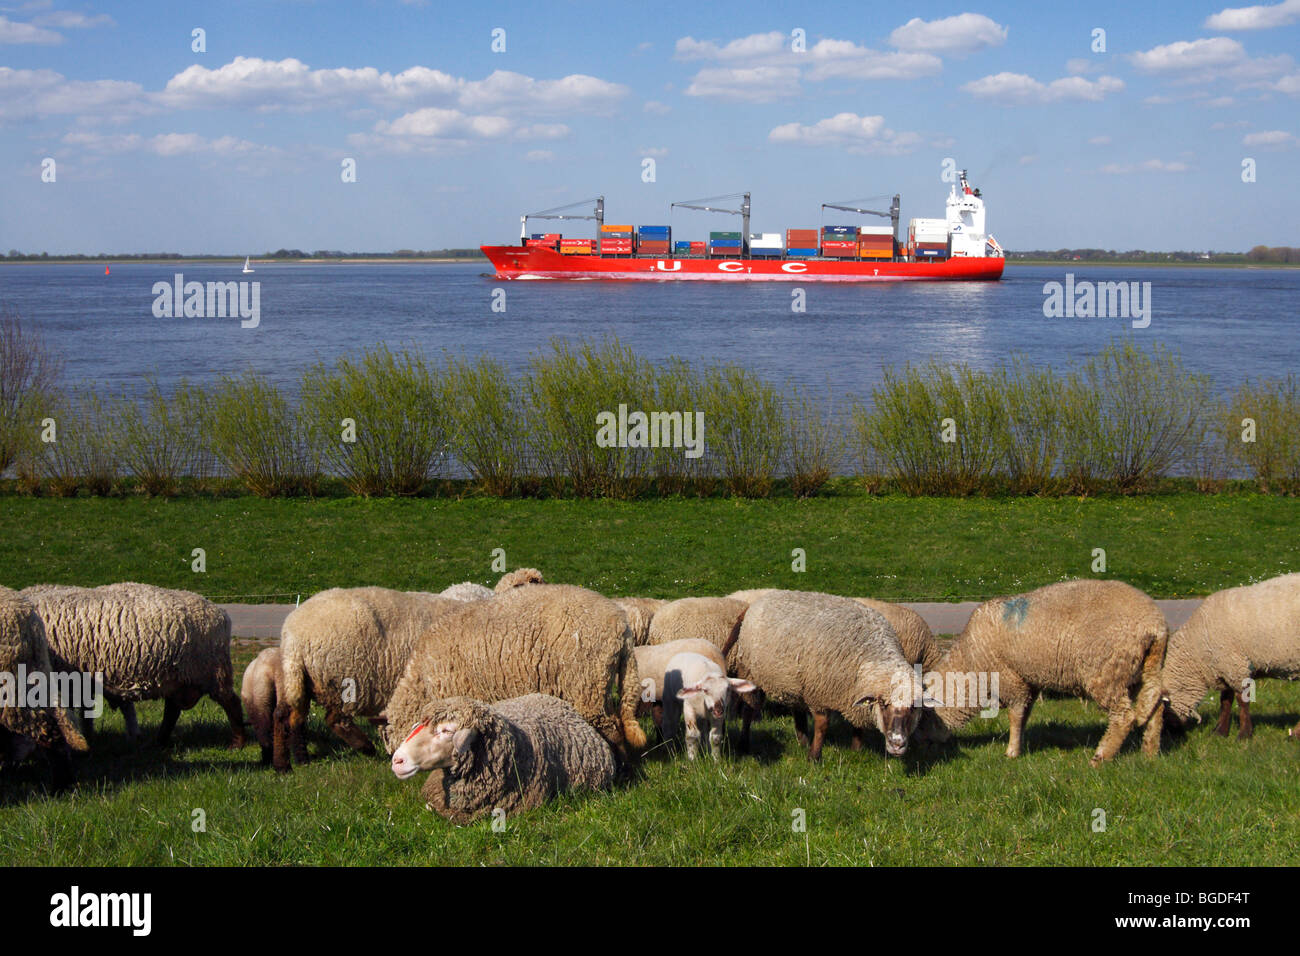 Domestic sheep (Ovis ammon f. aries ), ewes with lambs on a dyke with a containership on the Elbe river, Wisch, - Stock Image